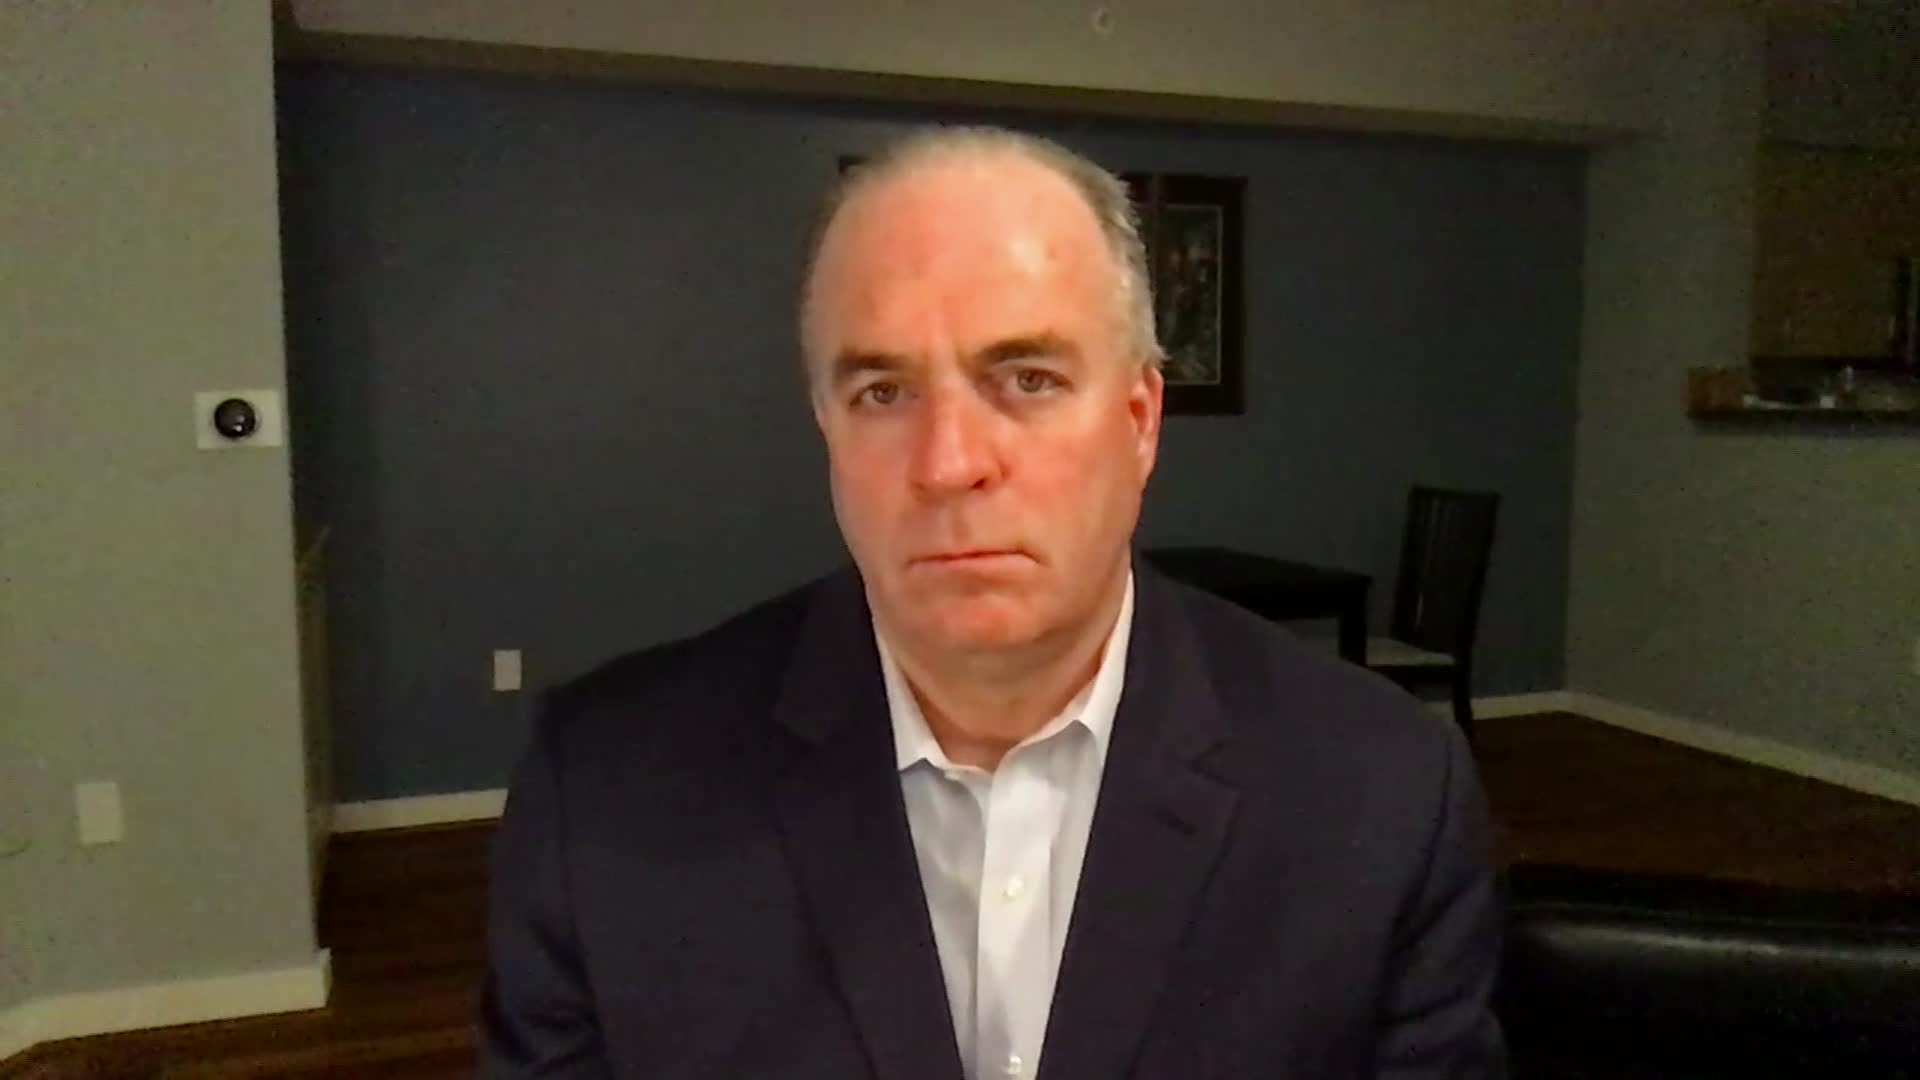 Democratic Rep. Dan Kildee on January 20.